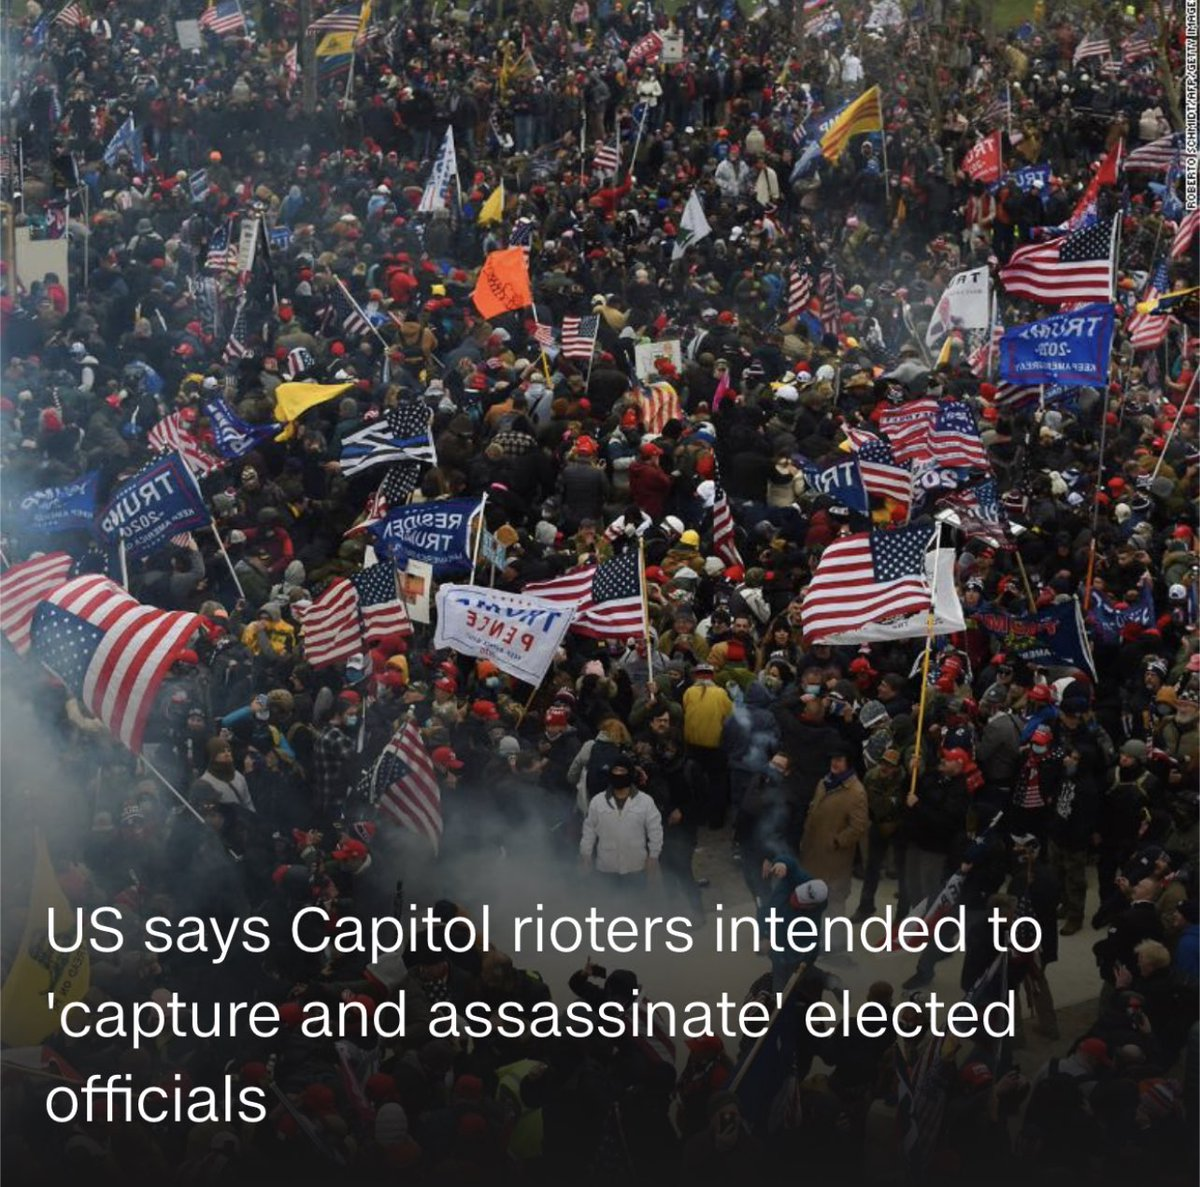 I never want to hear or see comparisons to BLM and LGBTQ+ protestors after this. Ever again. #DCTerrorists #CapitolRiot #insurrection